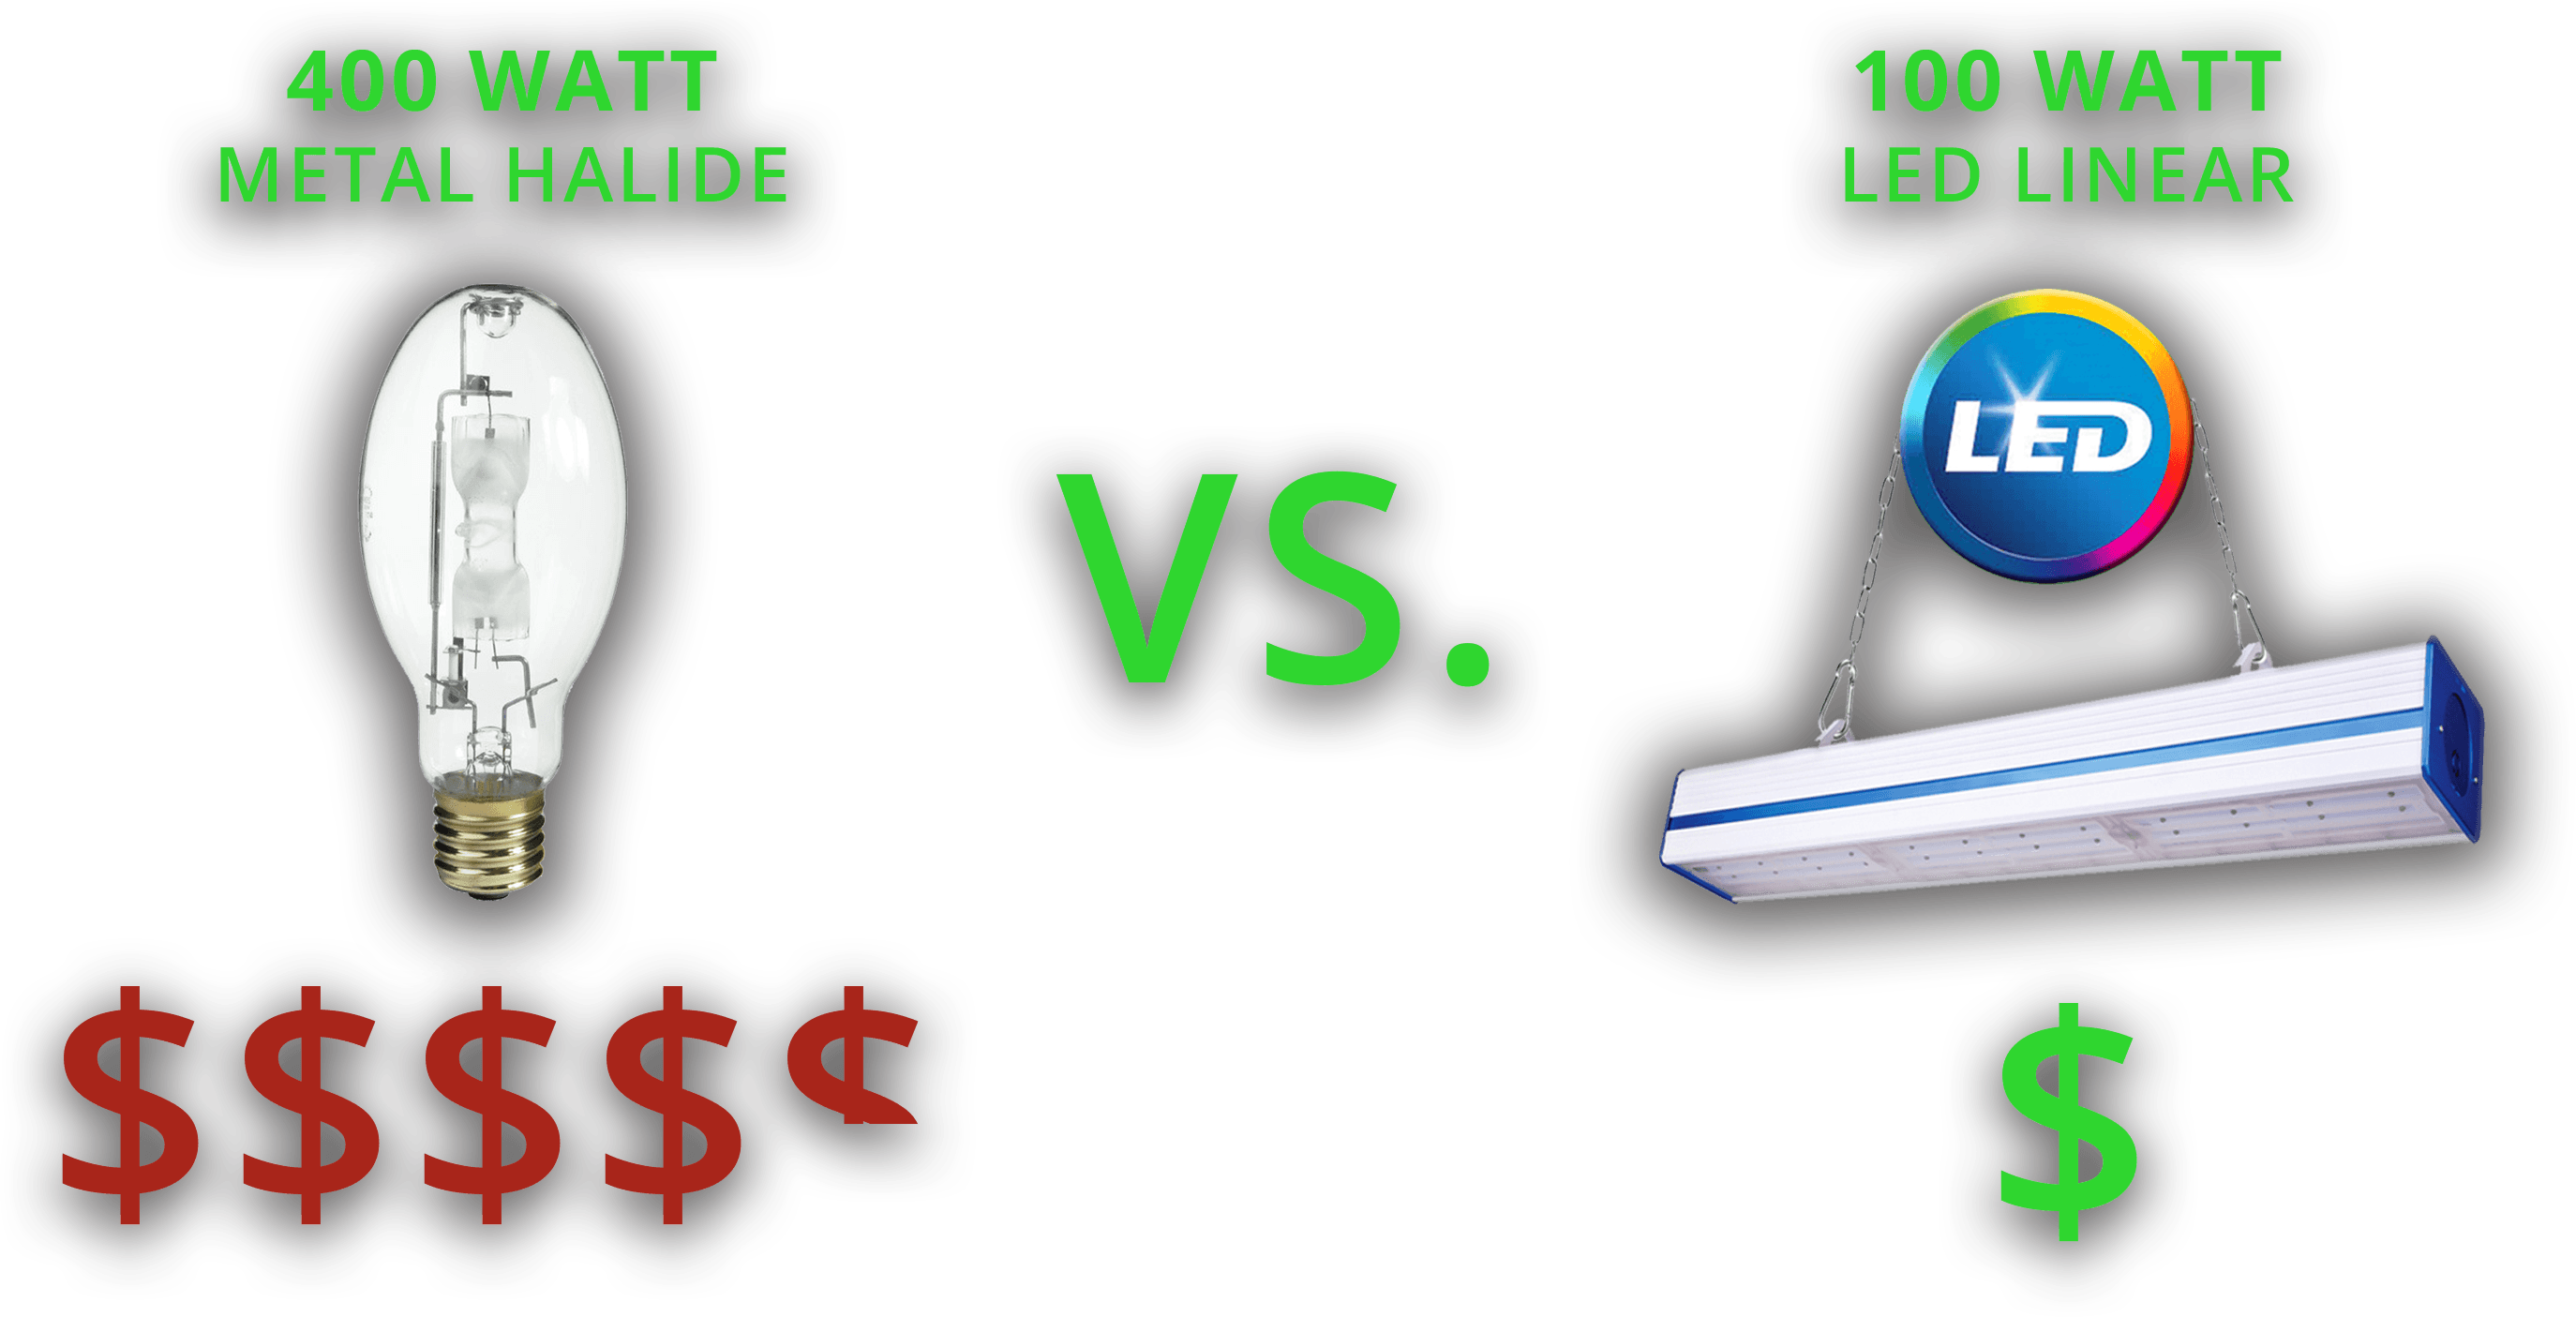 MH vs LED